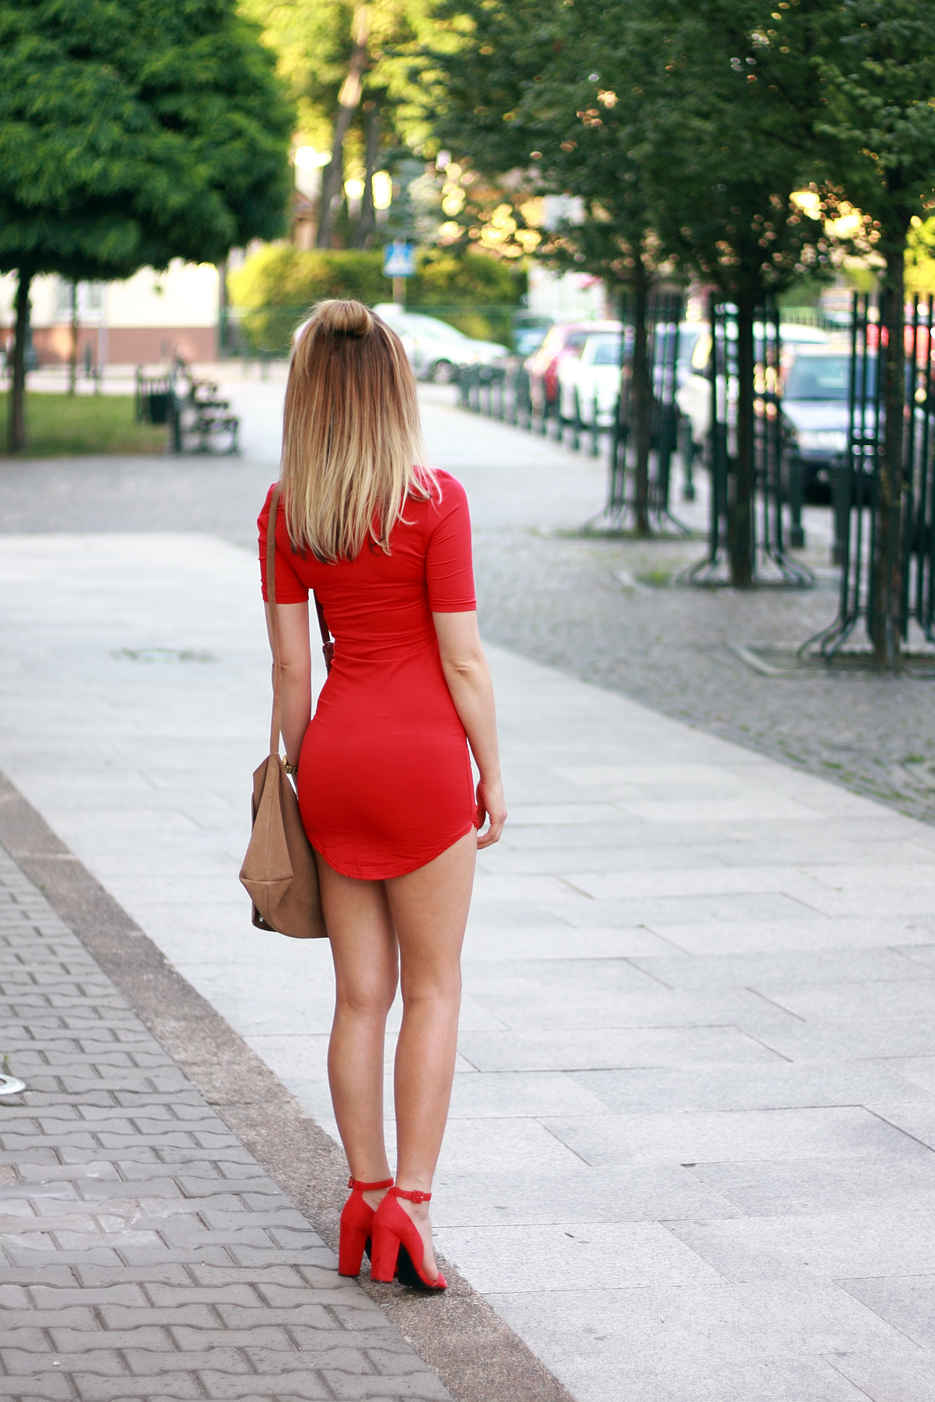 street style fashion red dress blonde pretty girl tumblr ootd outfit lookbook look what to wear clothes